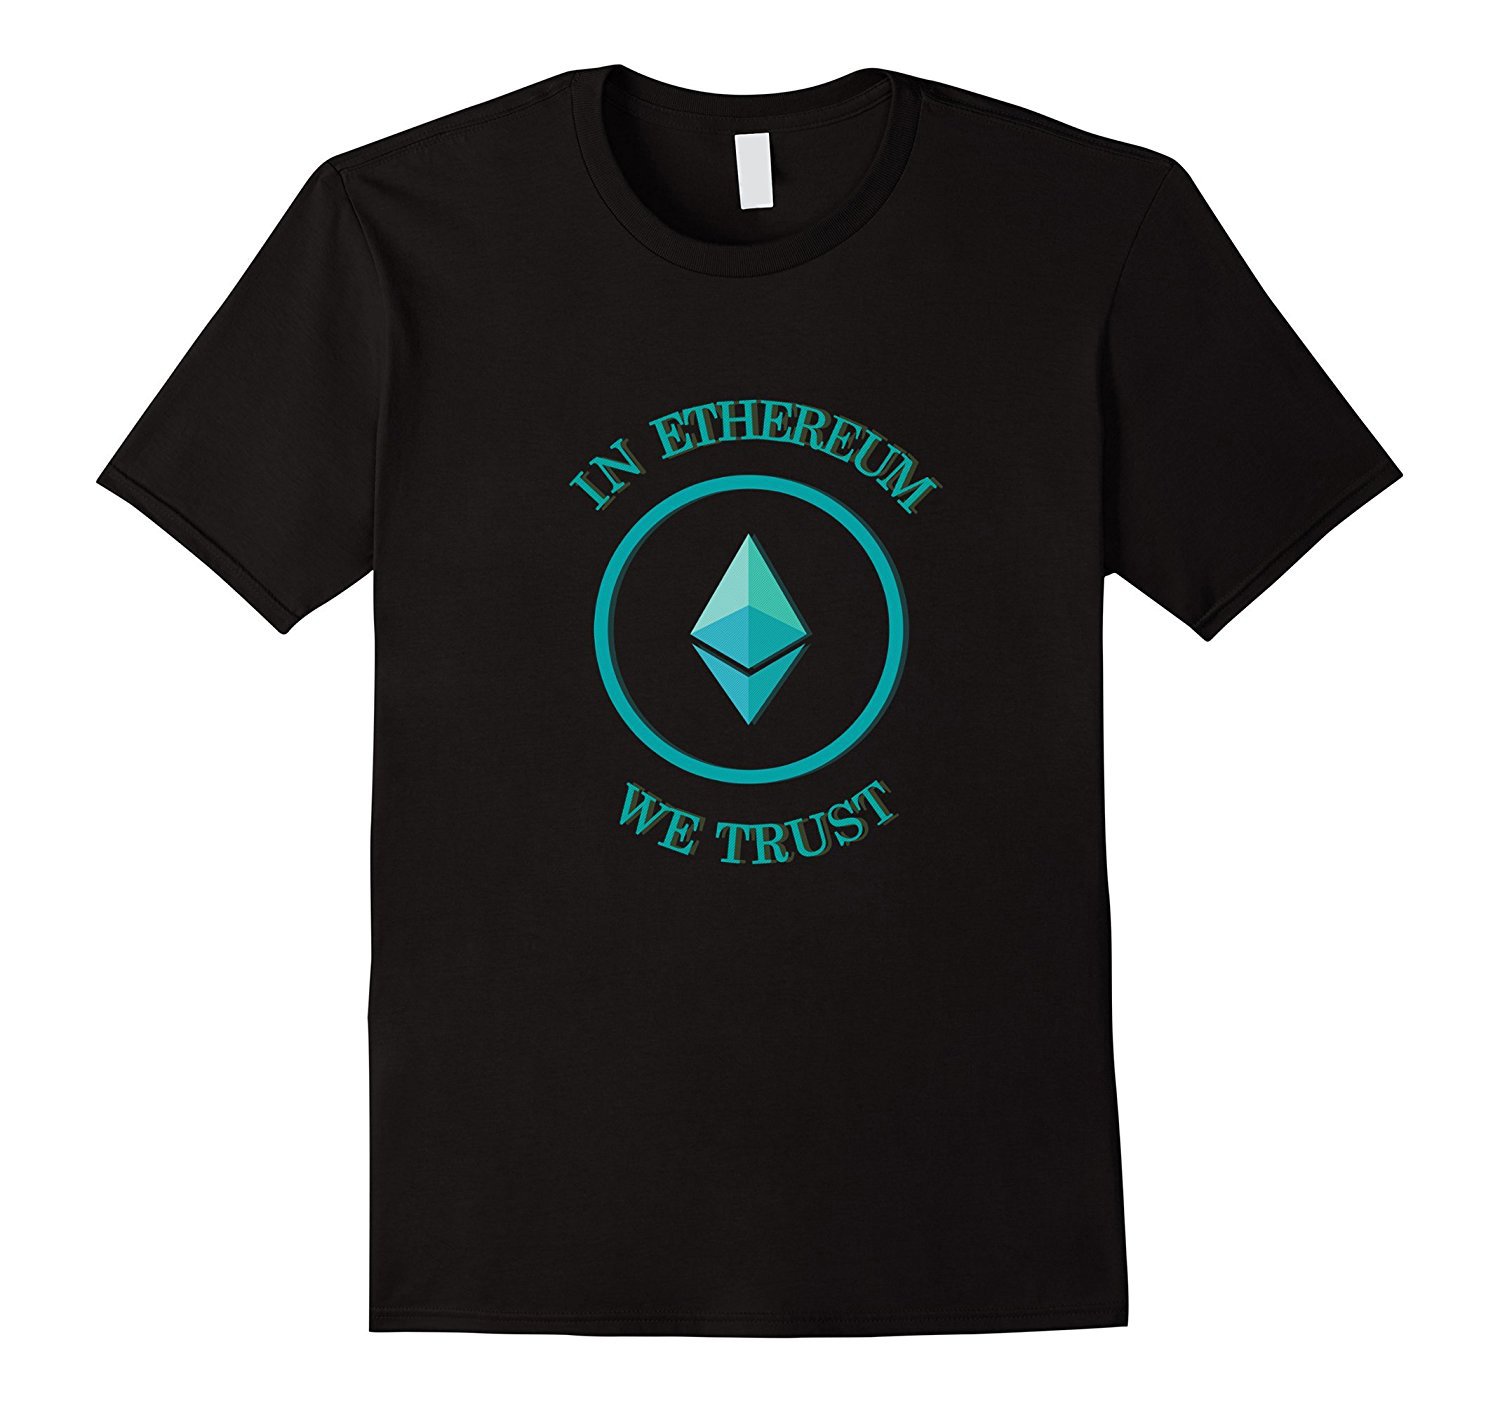 Ether Crypto currency tshirt - In Ethereum we Trust